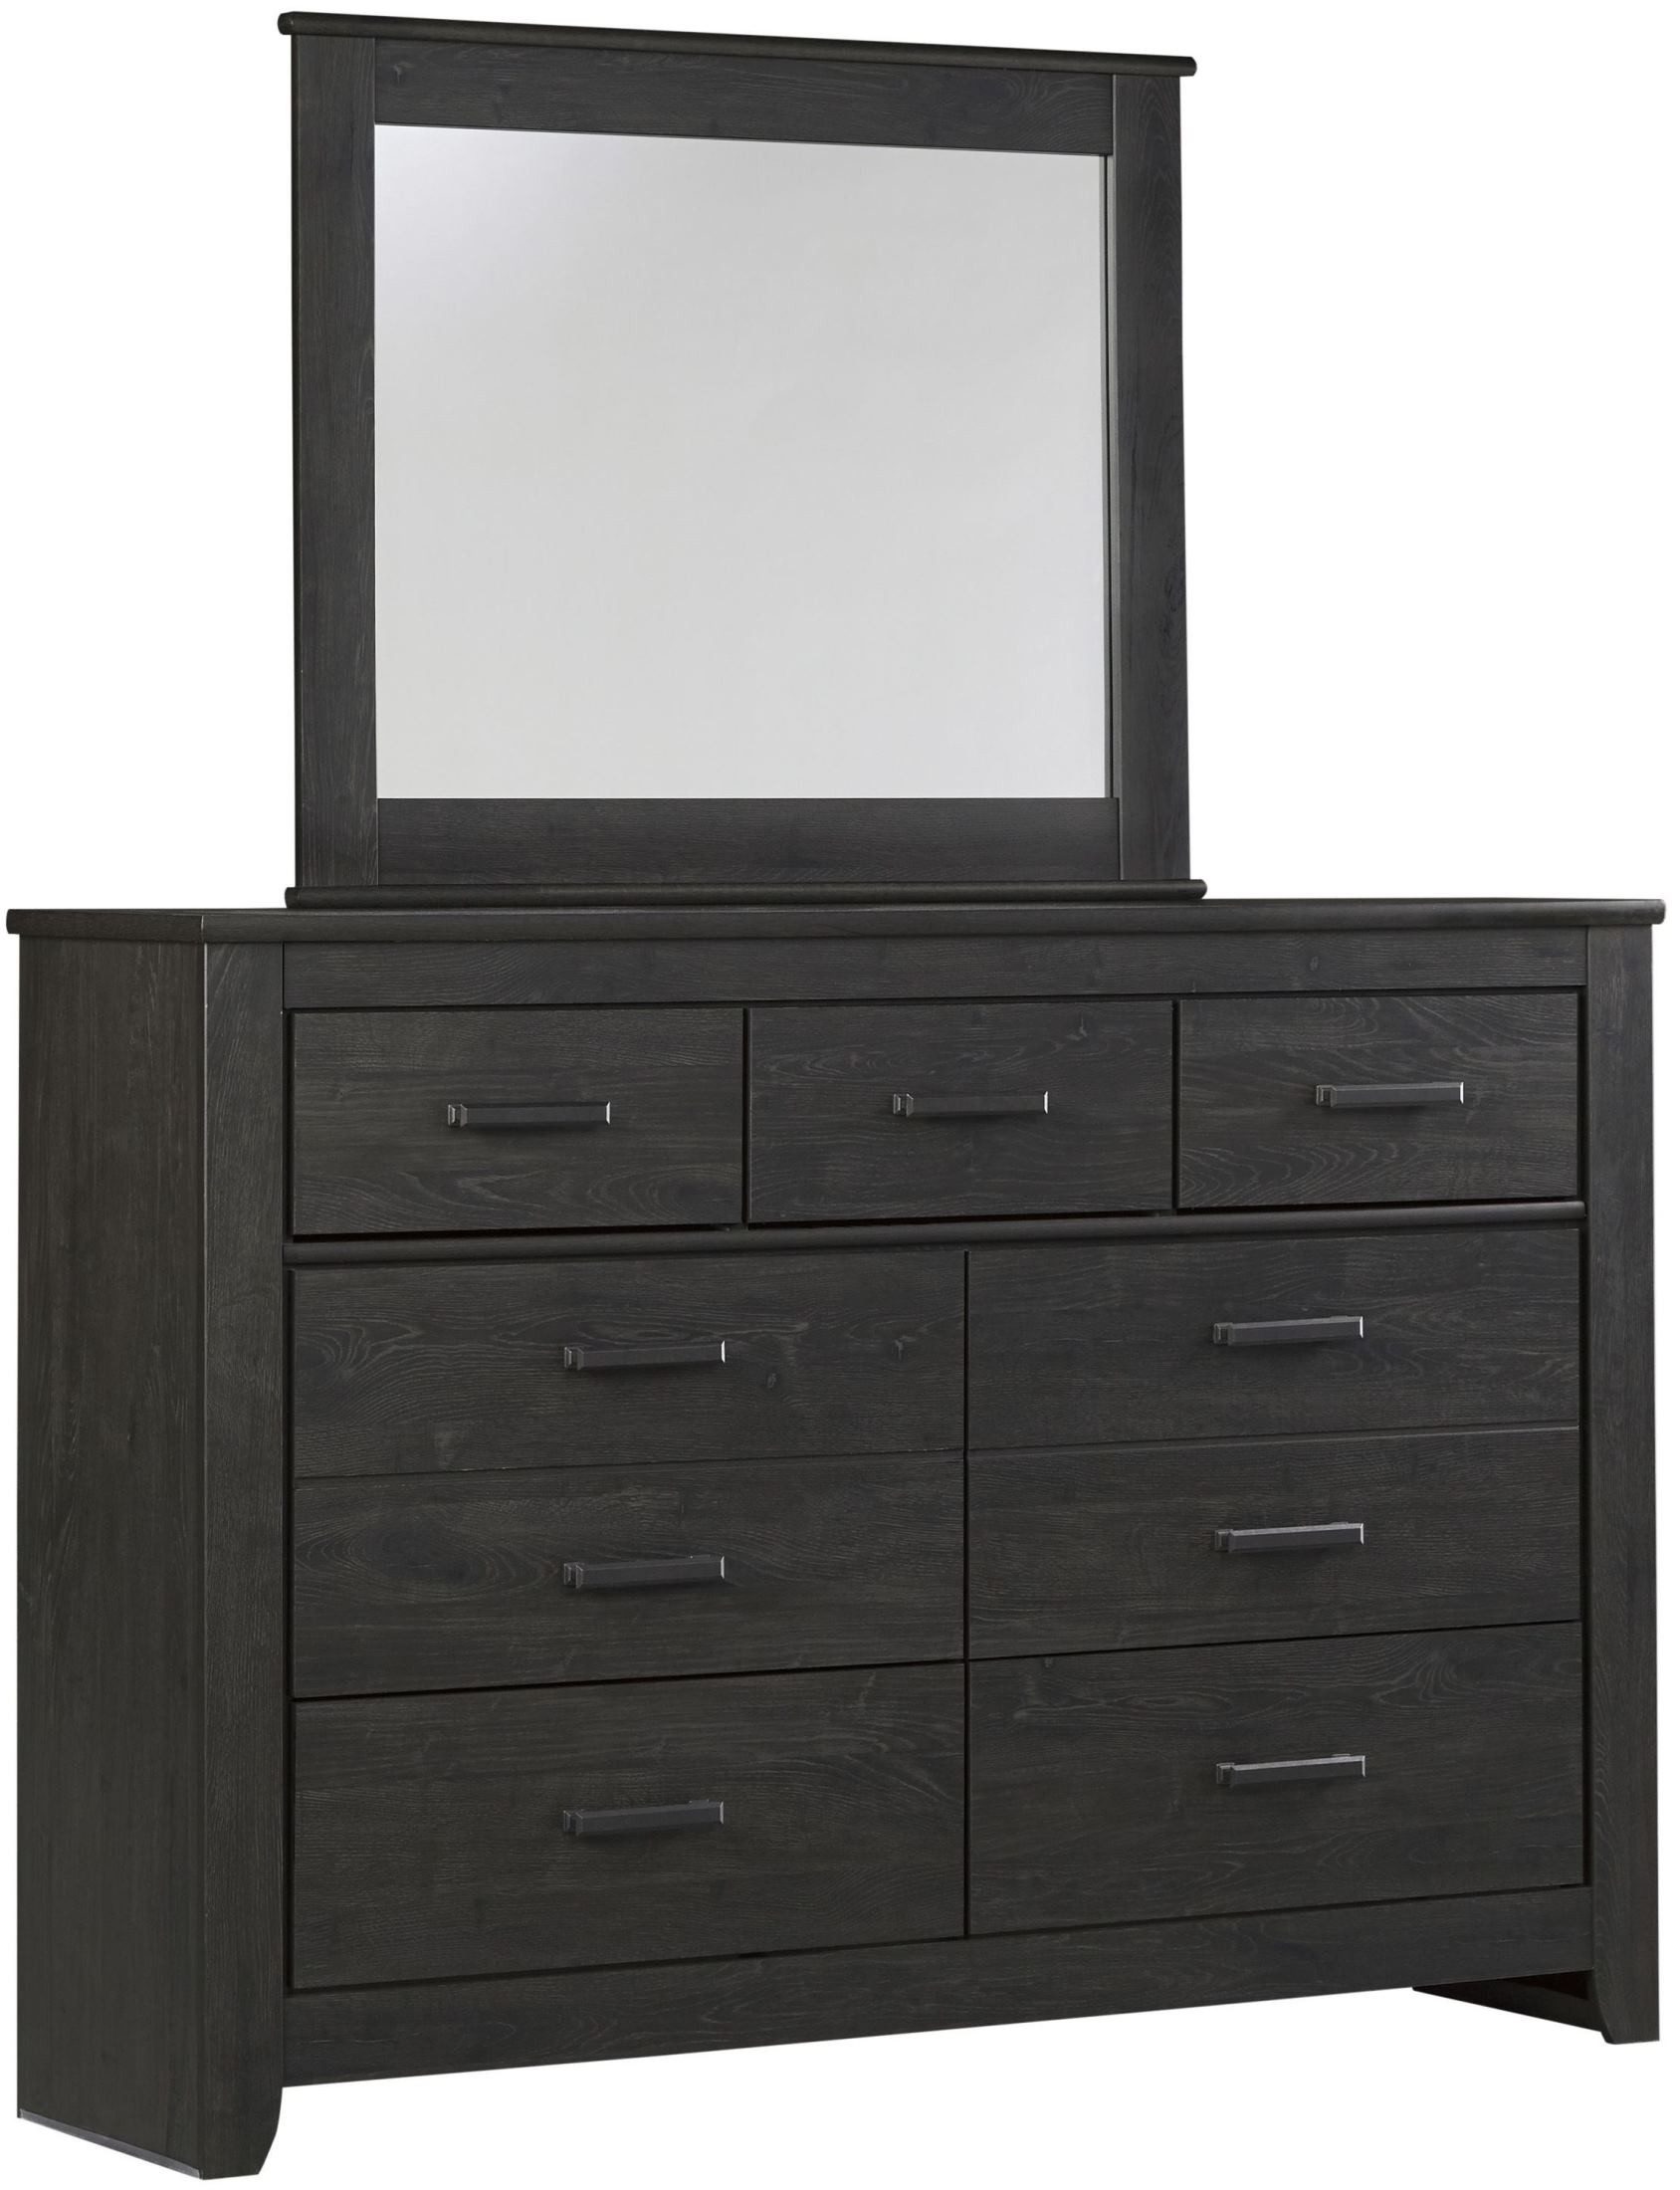 ii america black wb foa bryant collection media gallery furniture of dresser